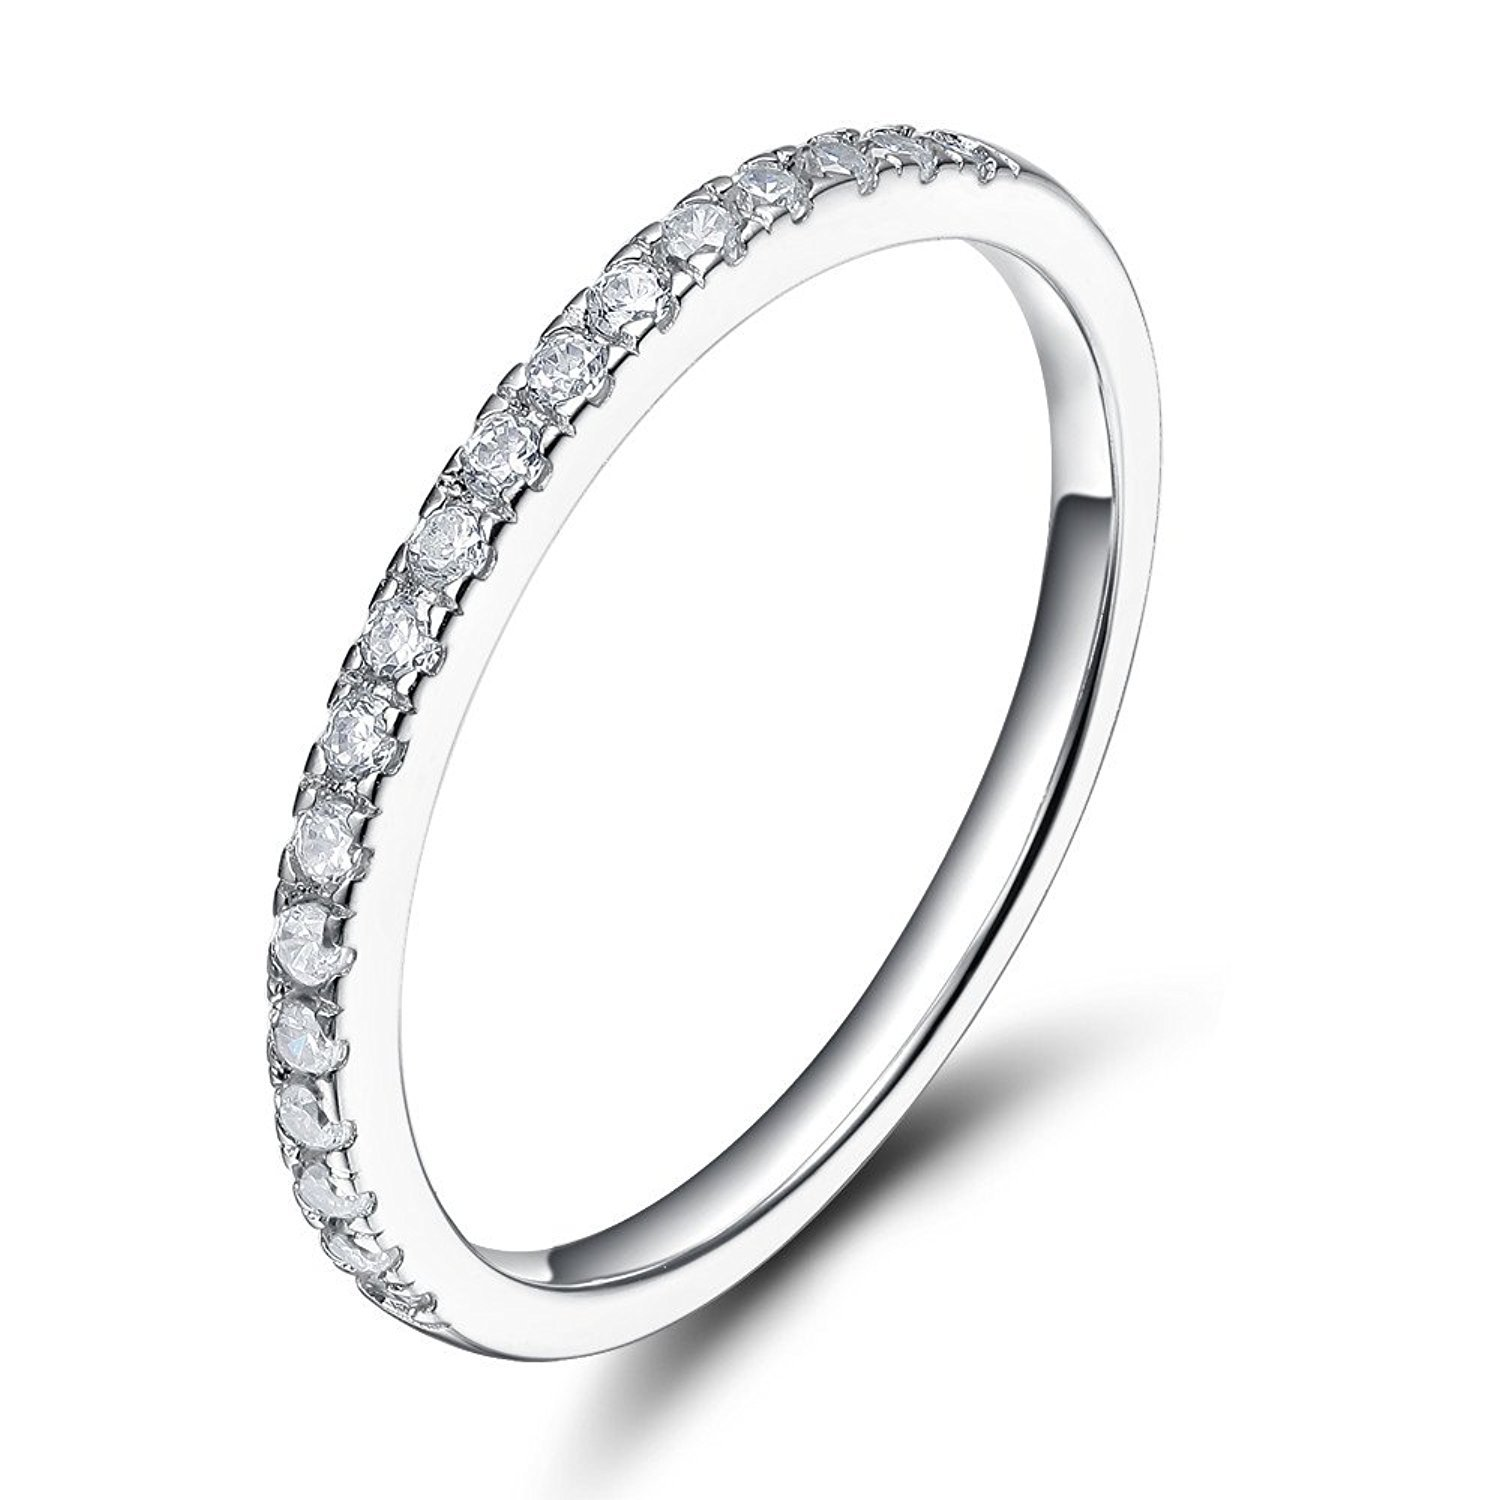 Sz 7.0 Solid 10K White Gold Diamond 2MM Half Eternity Stackable Wedding Anniversary Band Ring by Kobelle